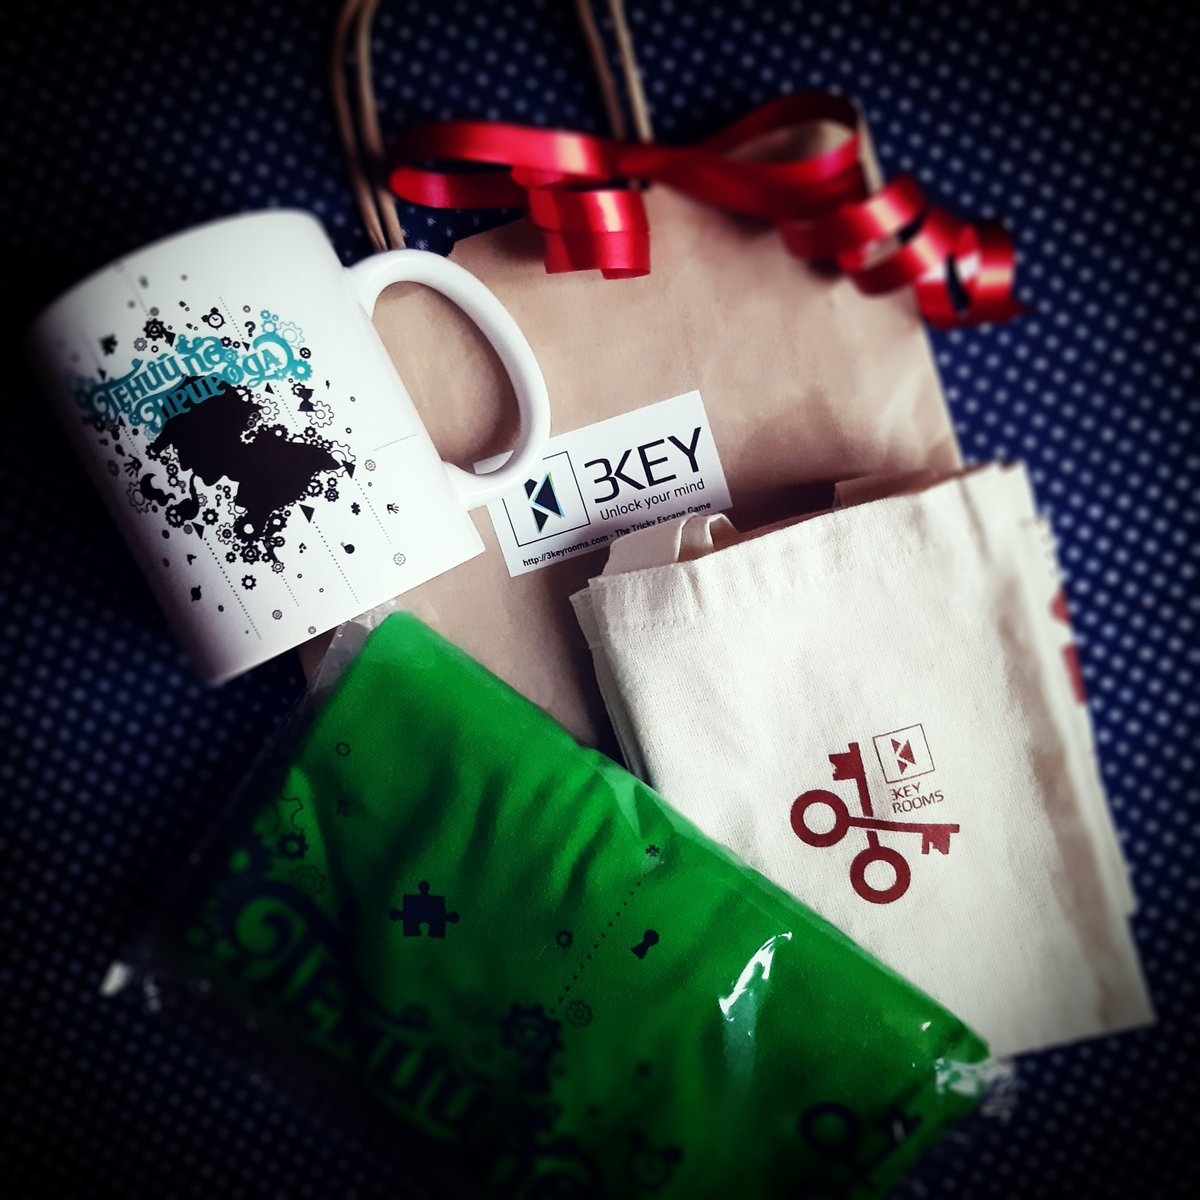 If you need #special #gifts for your clients, fans, team, family or friends - just ask! #custom #inscription #bag #mug #illustration #shirt #tee #tshirts #merch #shirtdesign #tshirtdesign #coffeegeek #coffeecup #holmes #coffeelovers #coffeemugs #coffeemug #cup #shirtillustrationpic.twitter.com/AaKSr8lKad